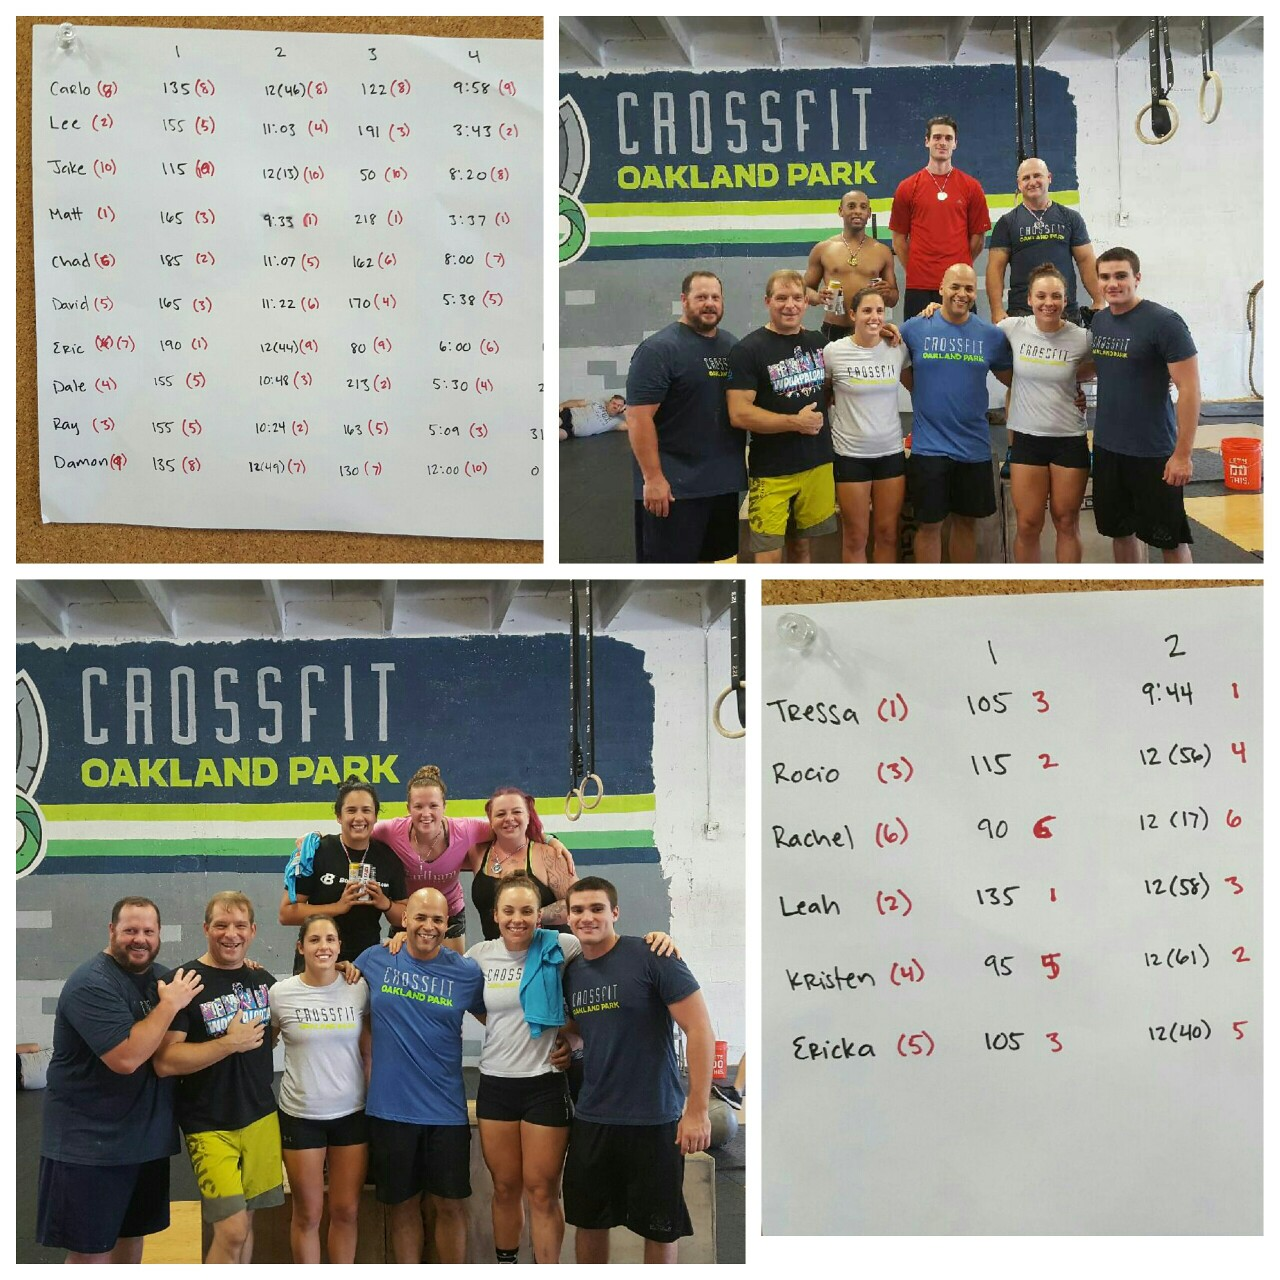 picture relating to Circus Circus Coupons Printable identified as Crossfit keep coupon - Circus circus adventuredome coupon codes